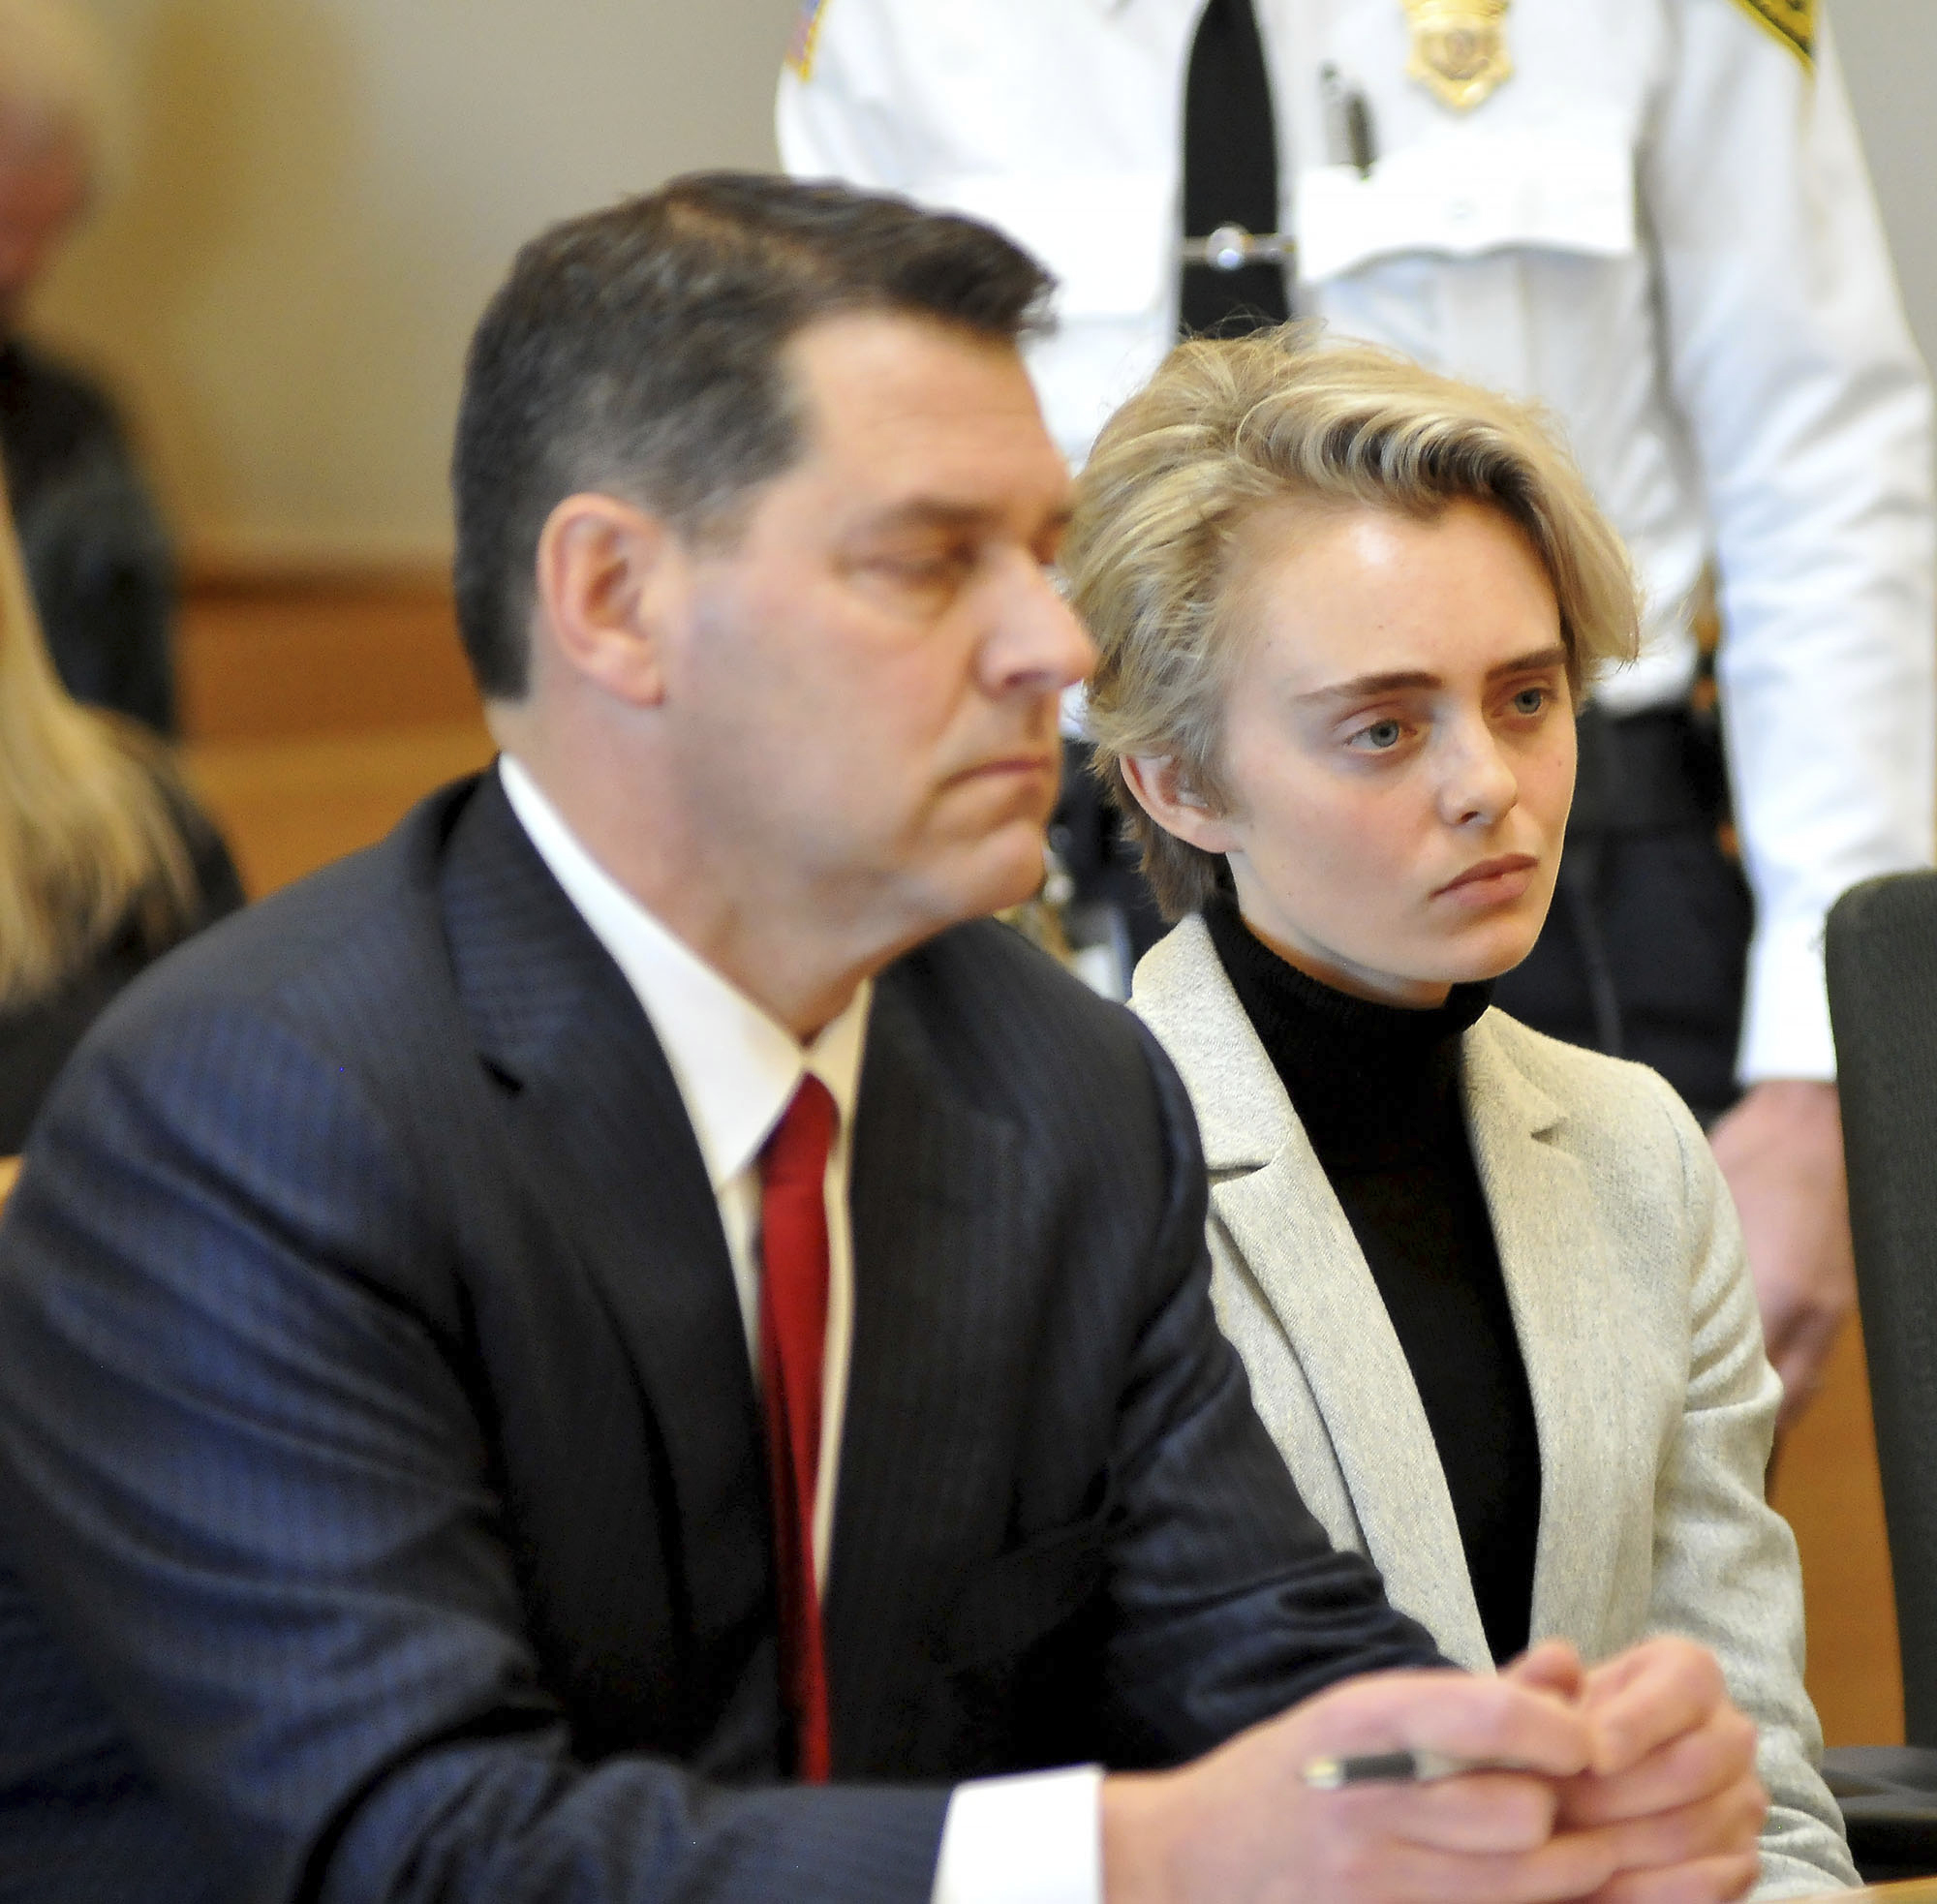 Michelle Carter Parents >> This Time Michelle Carter Sheds No Tears As She Hears Her